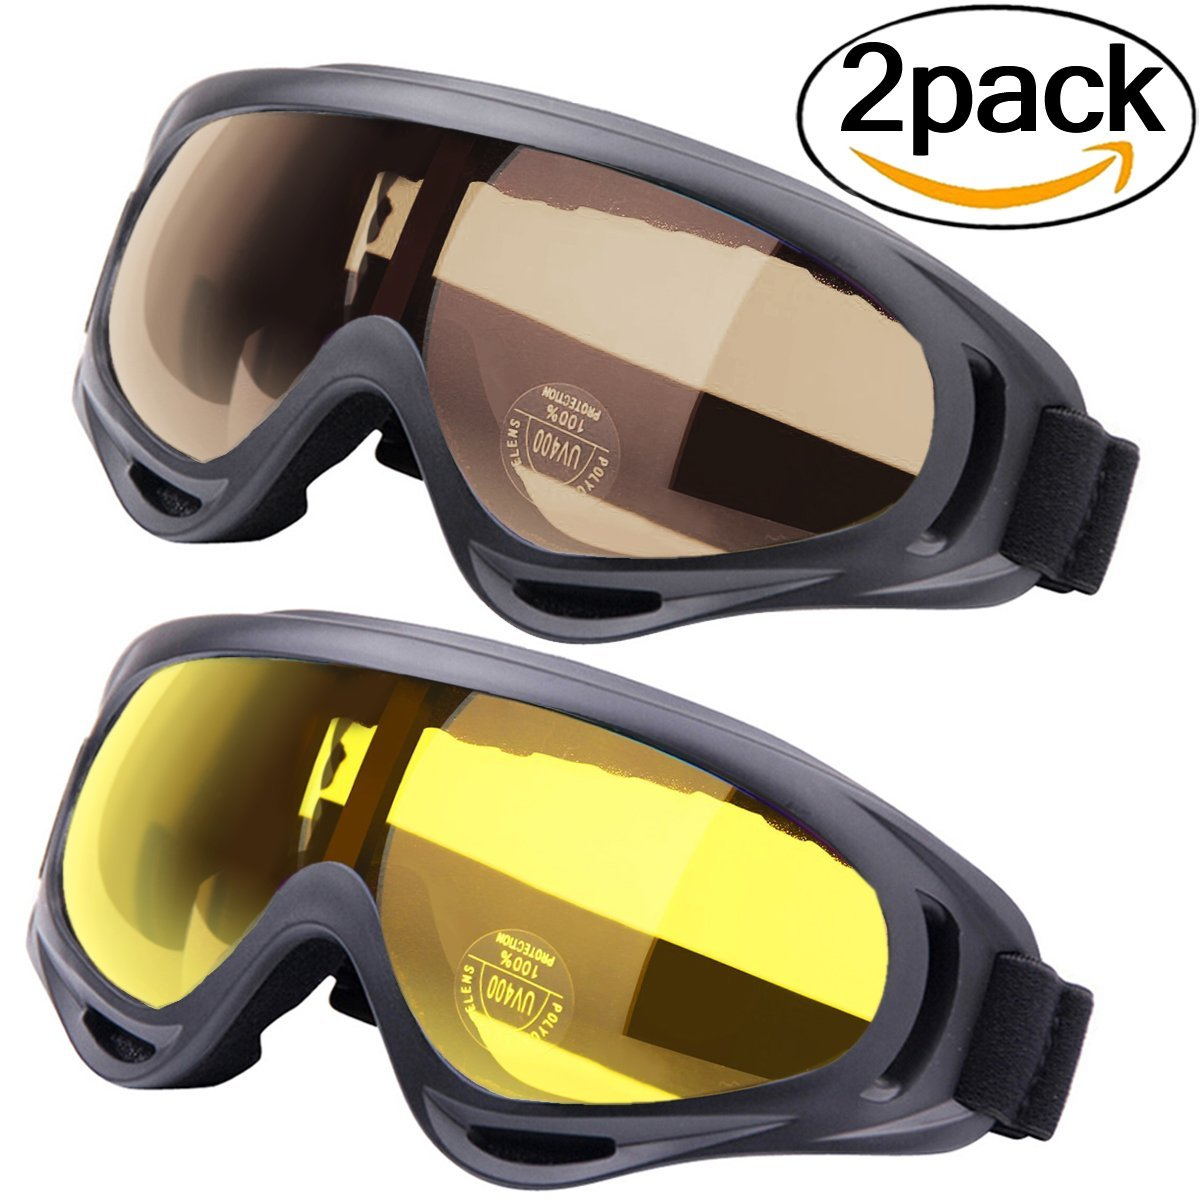 Outgeek Ski Goggles 2-Pack Skate Glasses with UV 400 Protection Windproof and Dustproof for Snowboard Motorcycle Bicycle by Ski Goggles